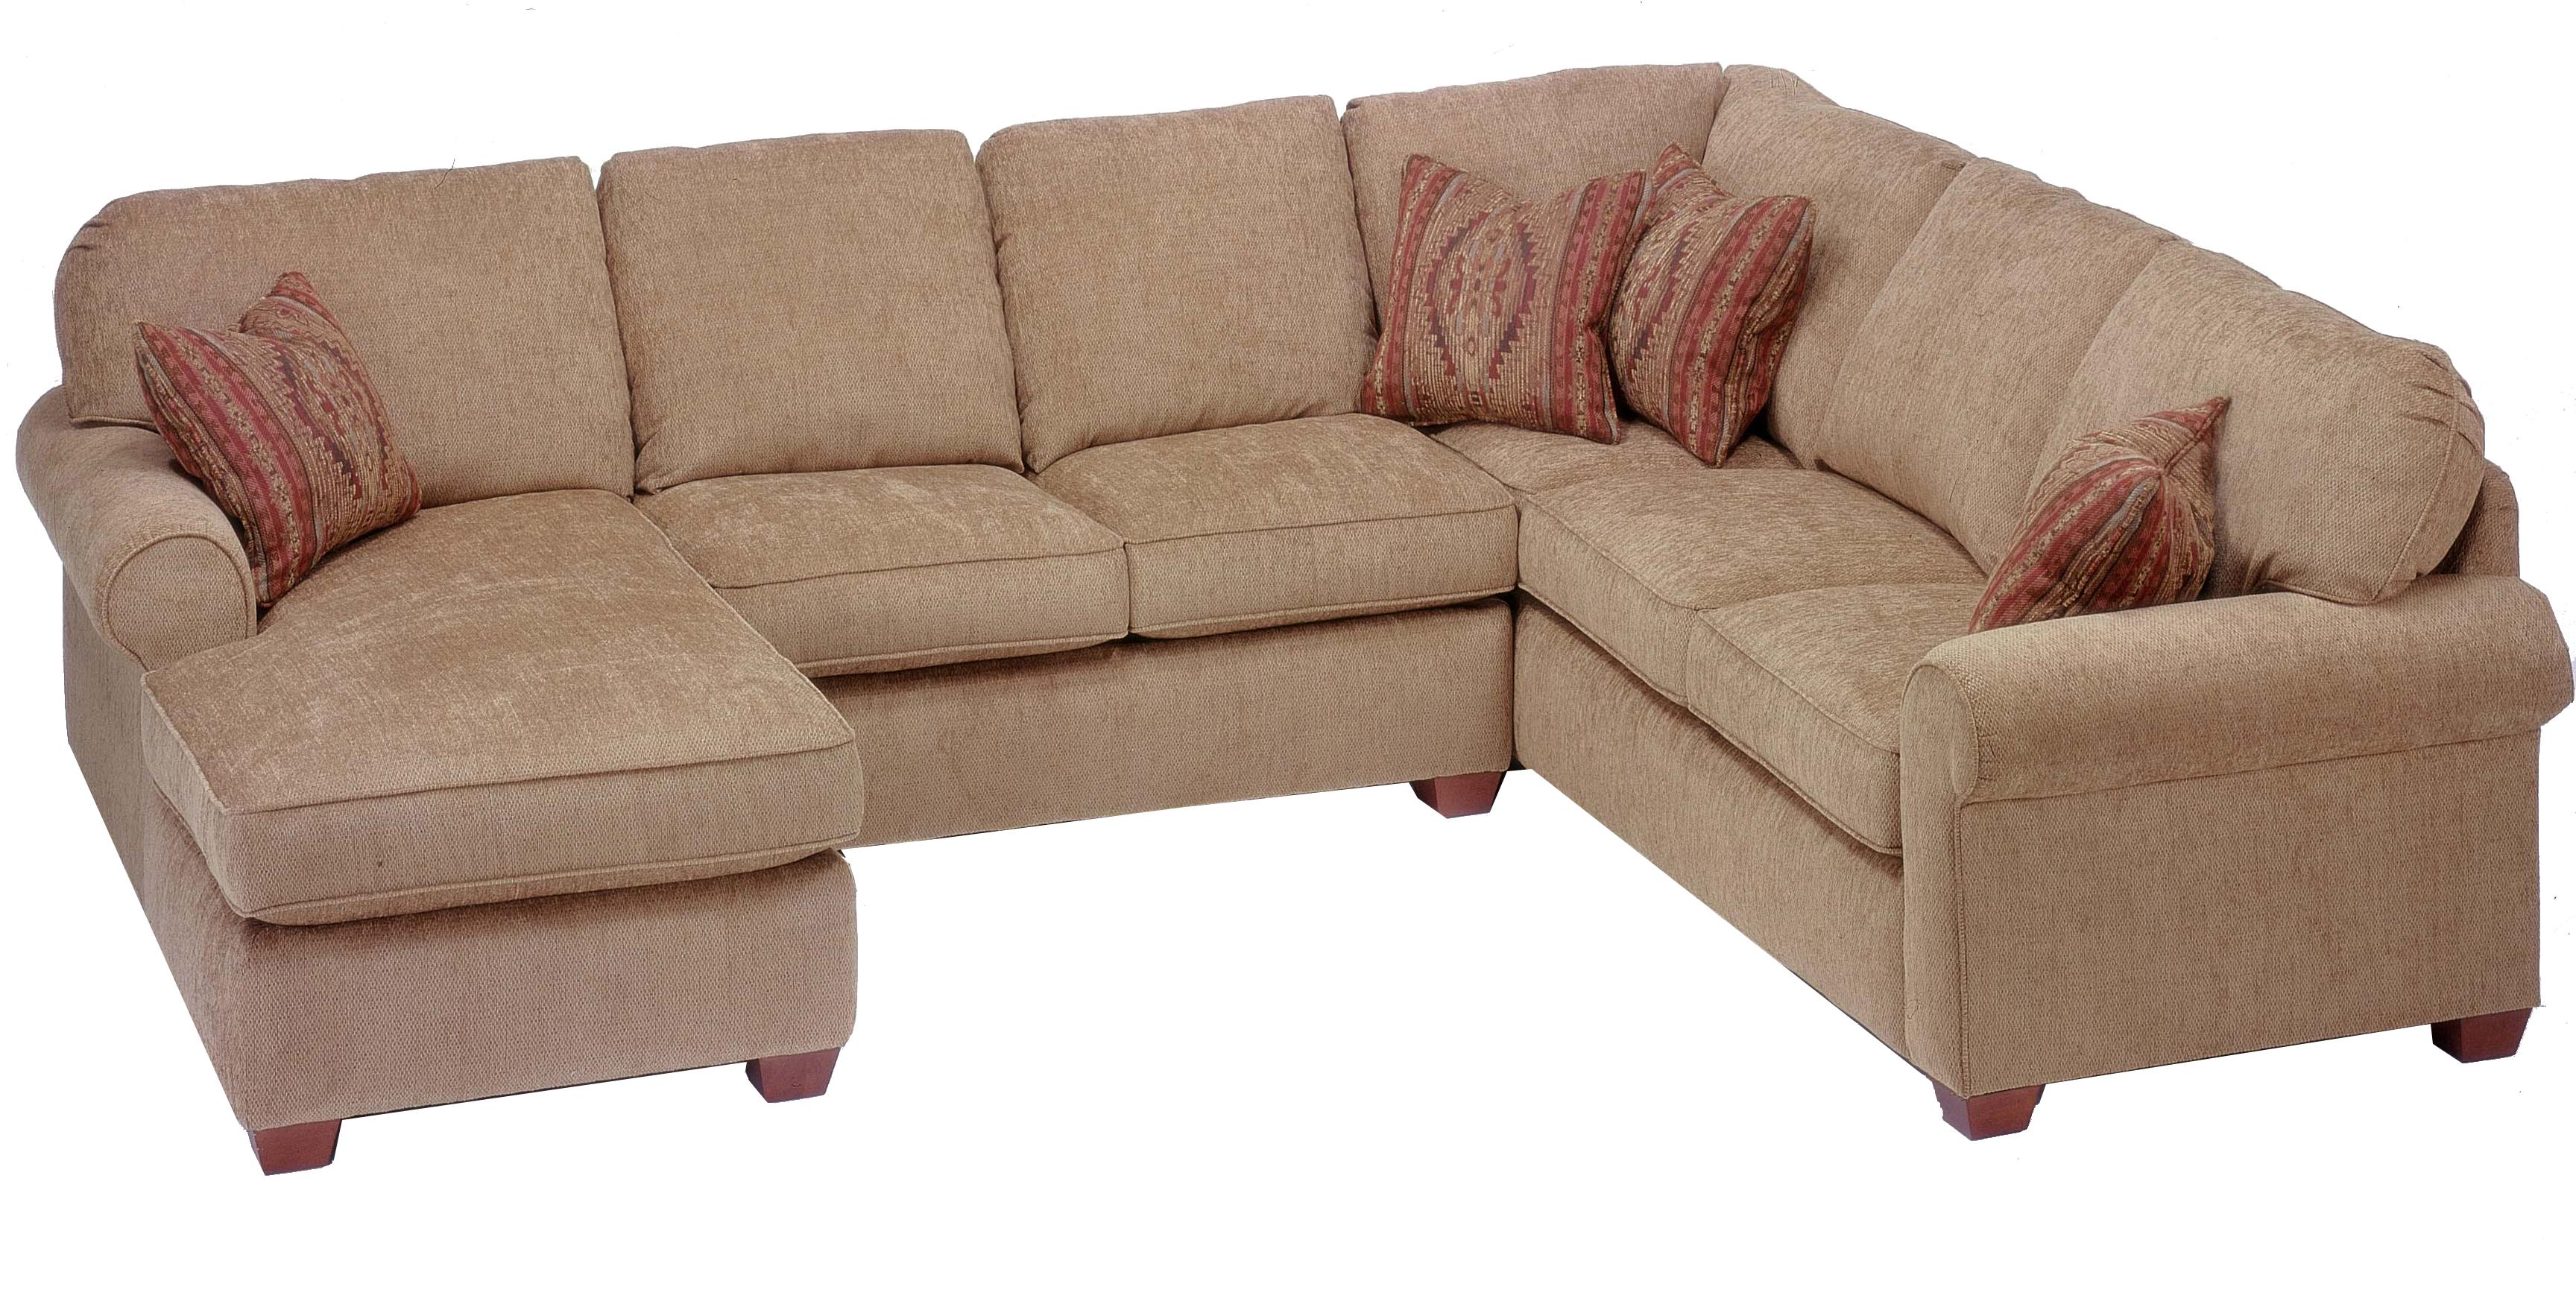 Flexsteel thornton 3 piece sectional with chaise hl for 3 piece sectional sofas with chaise